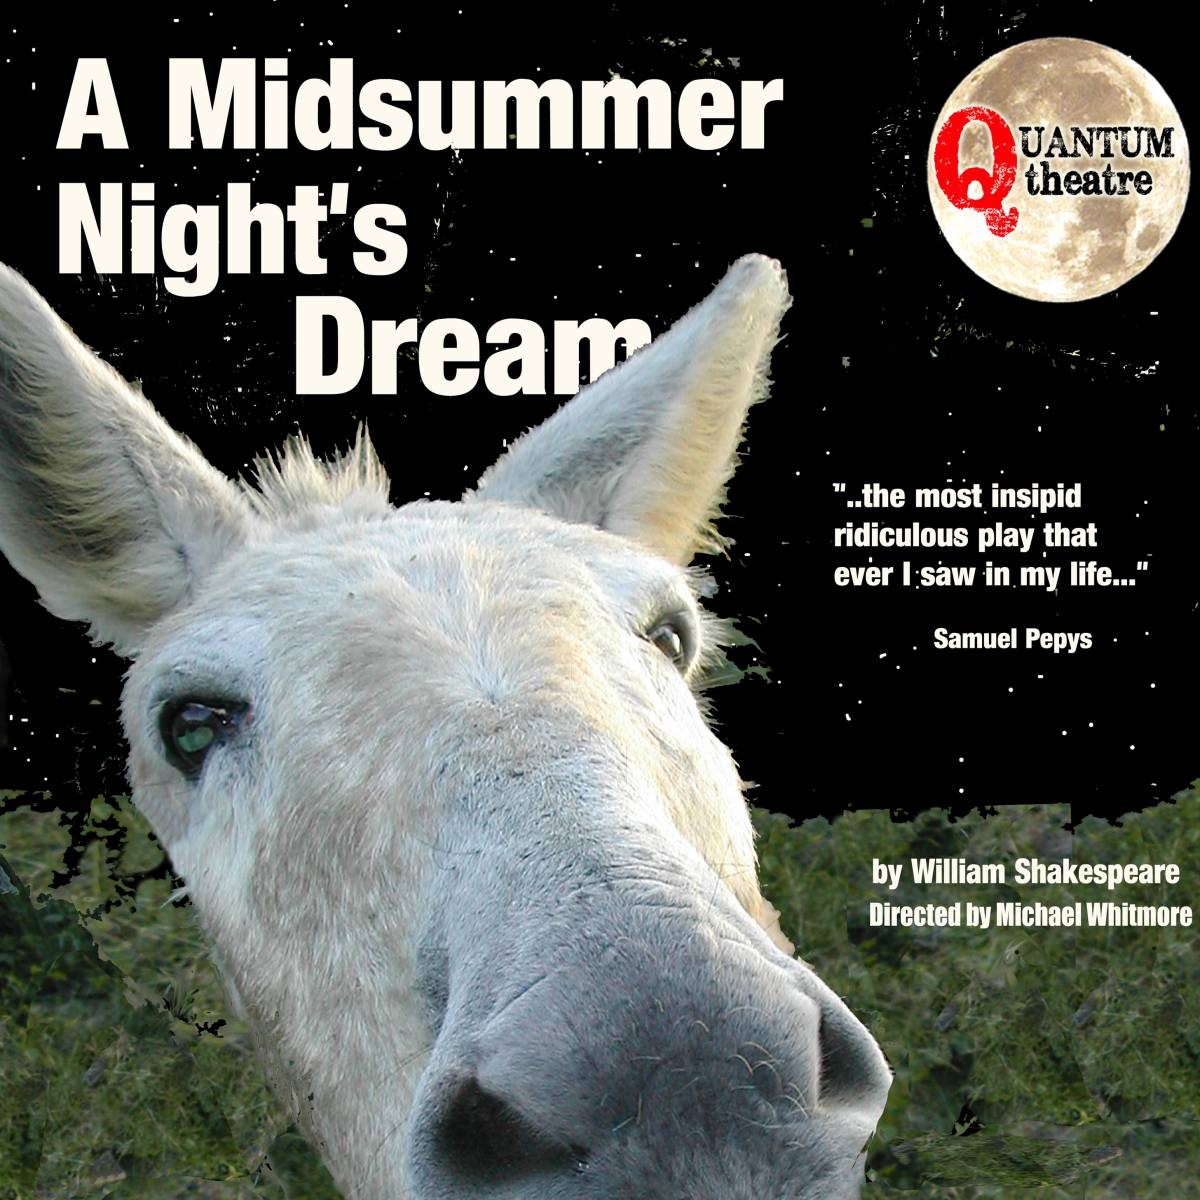 A Midsummer Nights Dream promo image